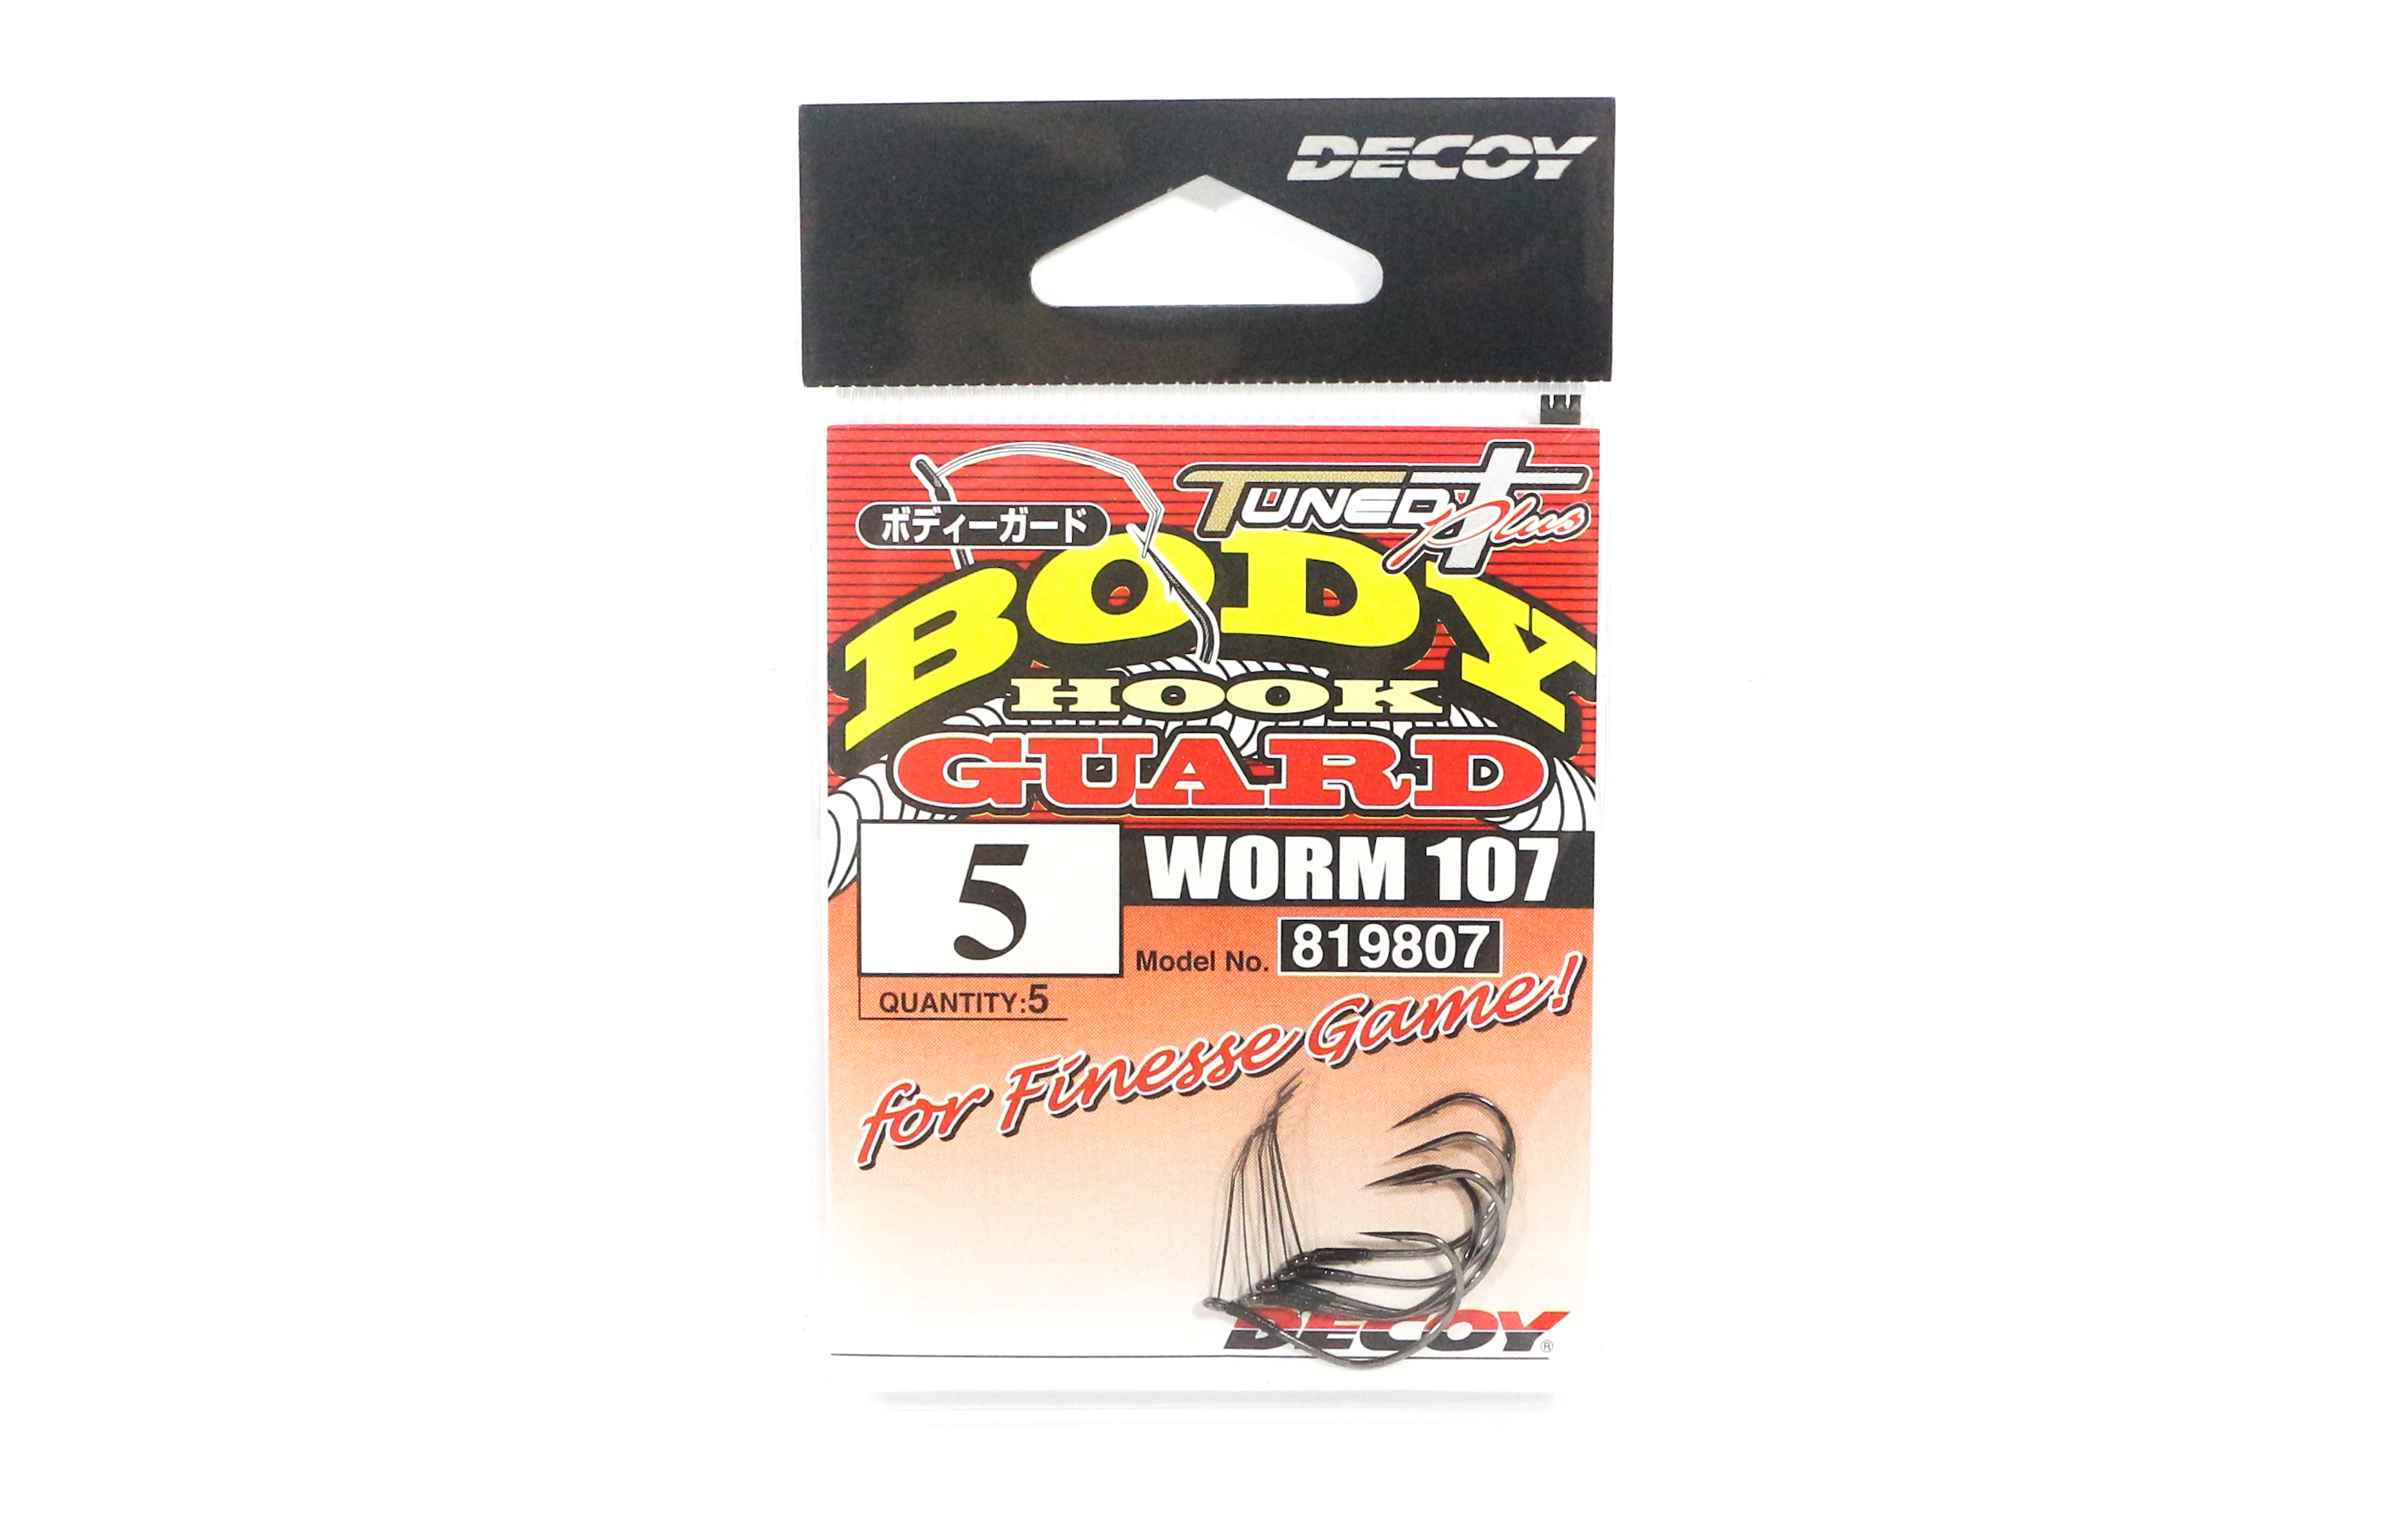 Decoy Worm 107 Body Guard Hook for Wacky Rig Size 5 (9807)